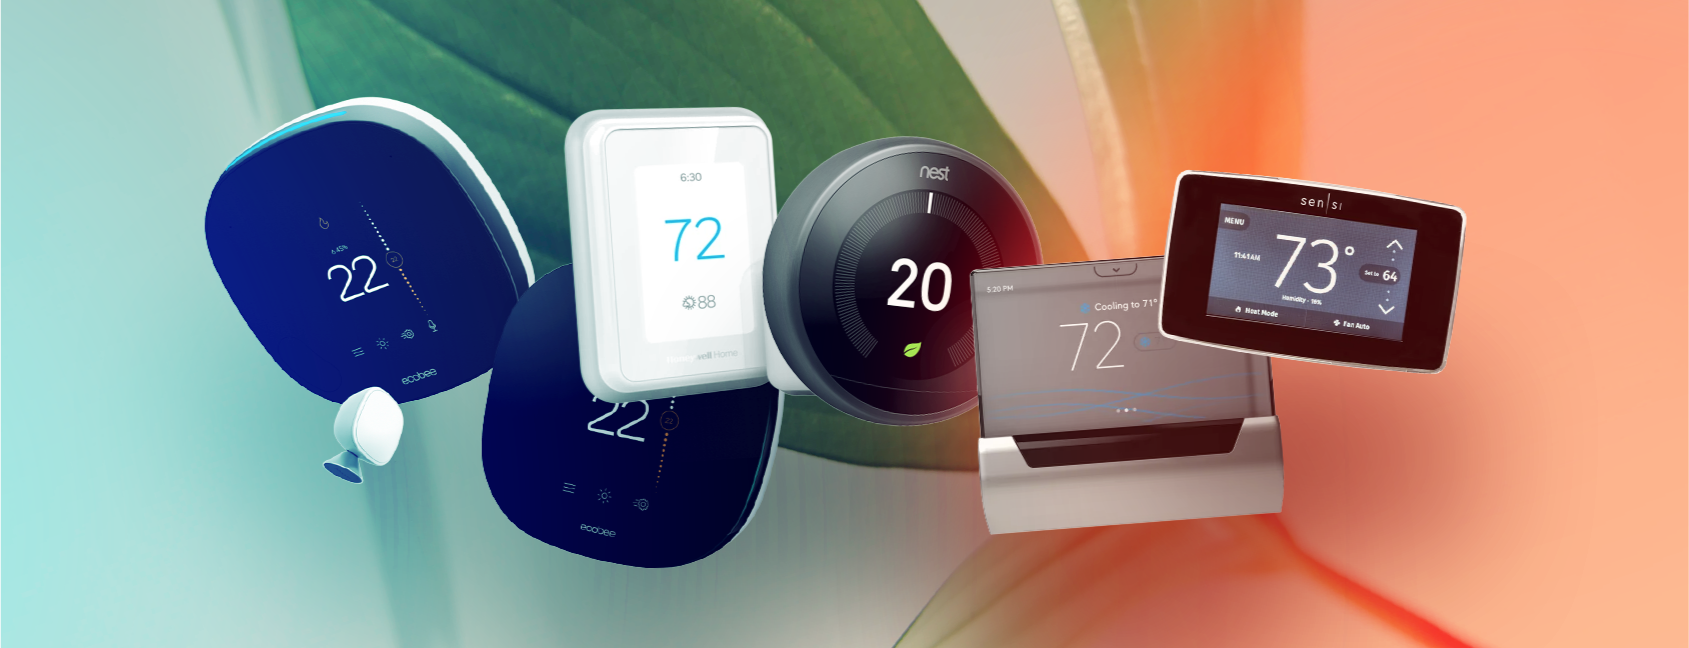 Cover Image for The 5 Smartest Thermostats on The Market